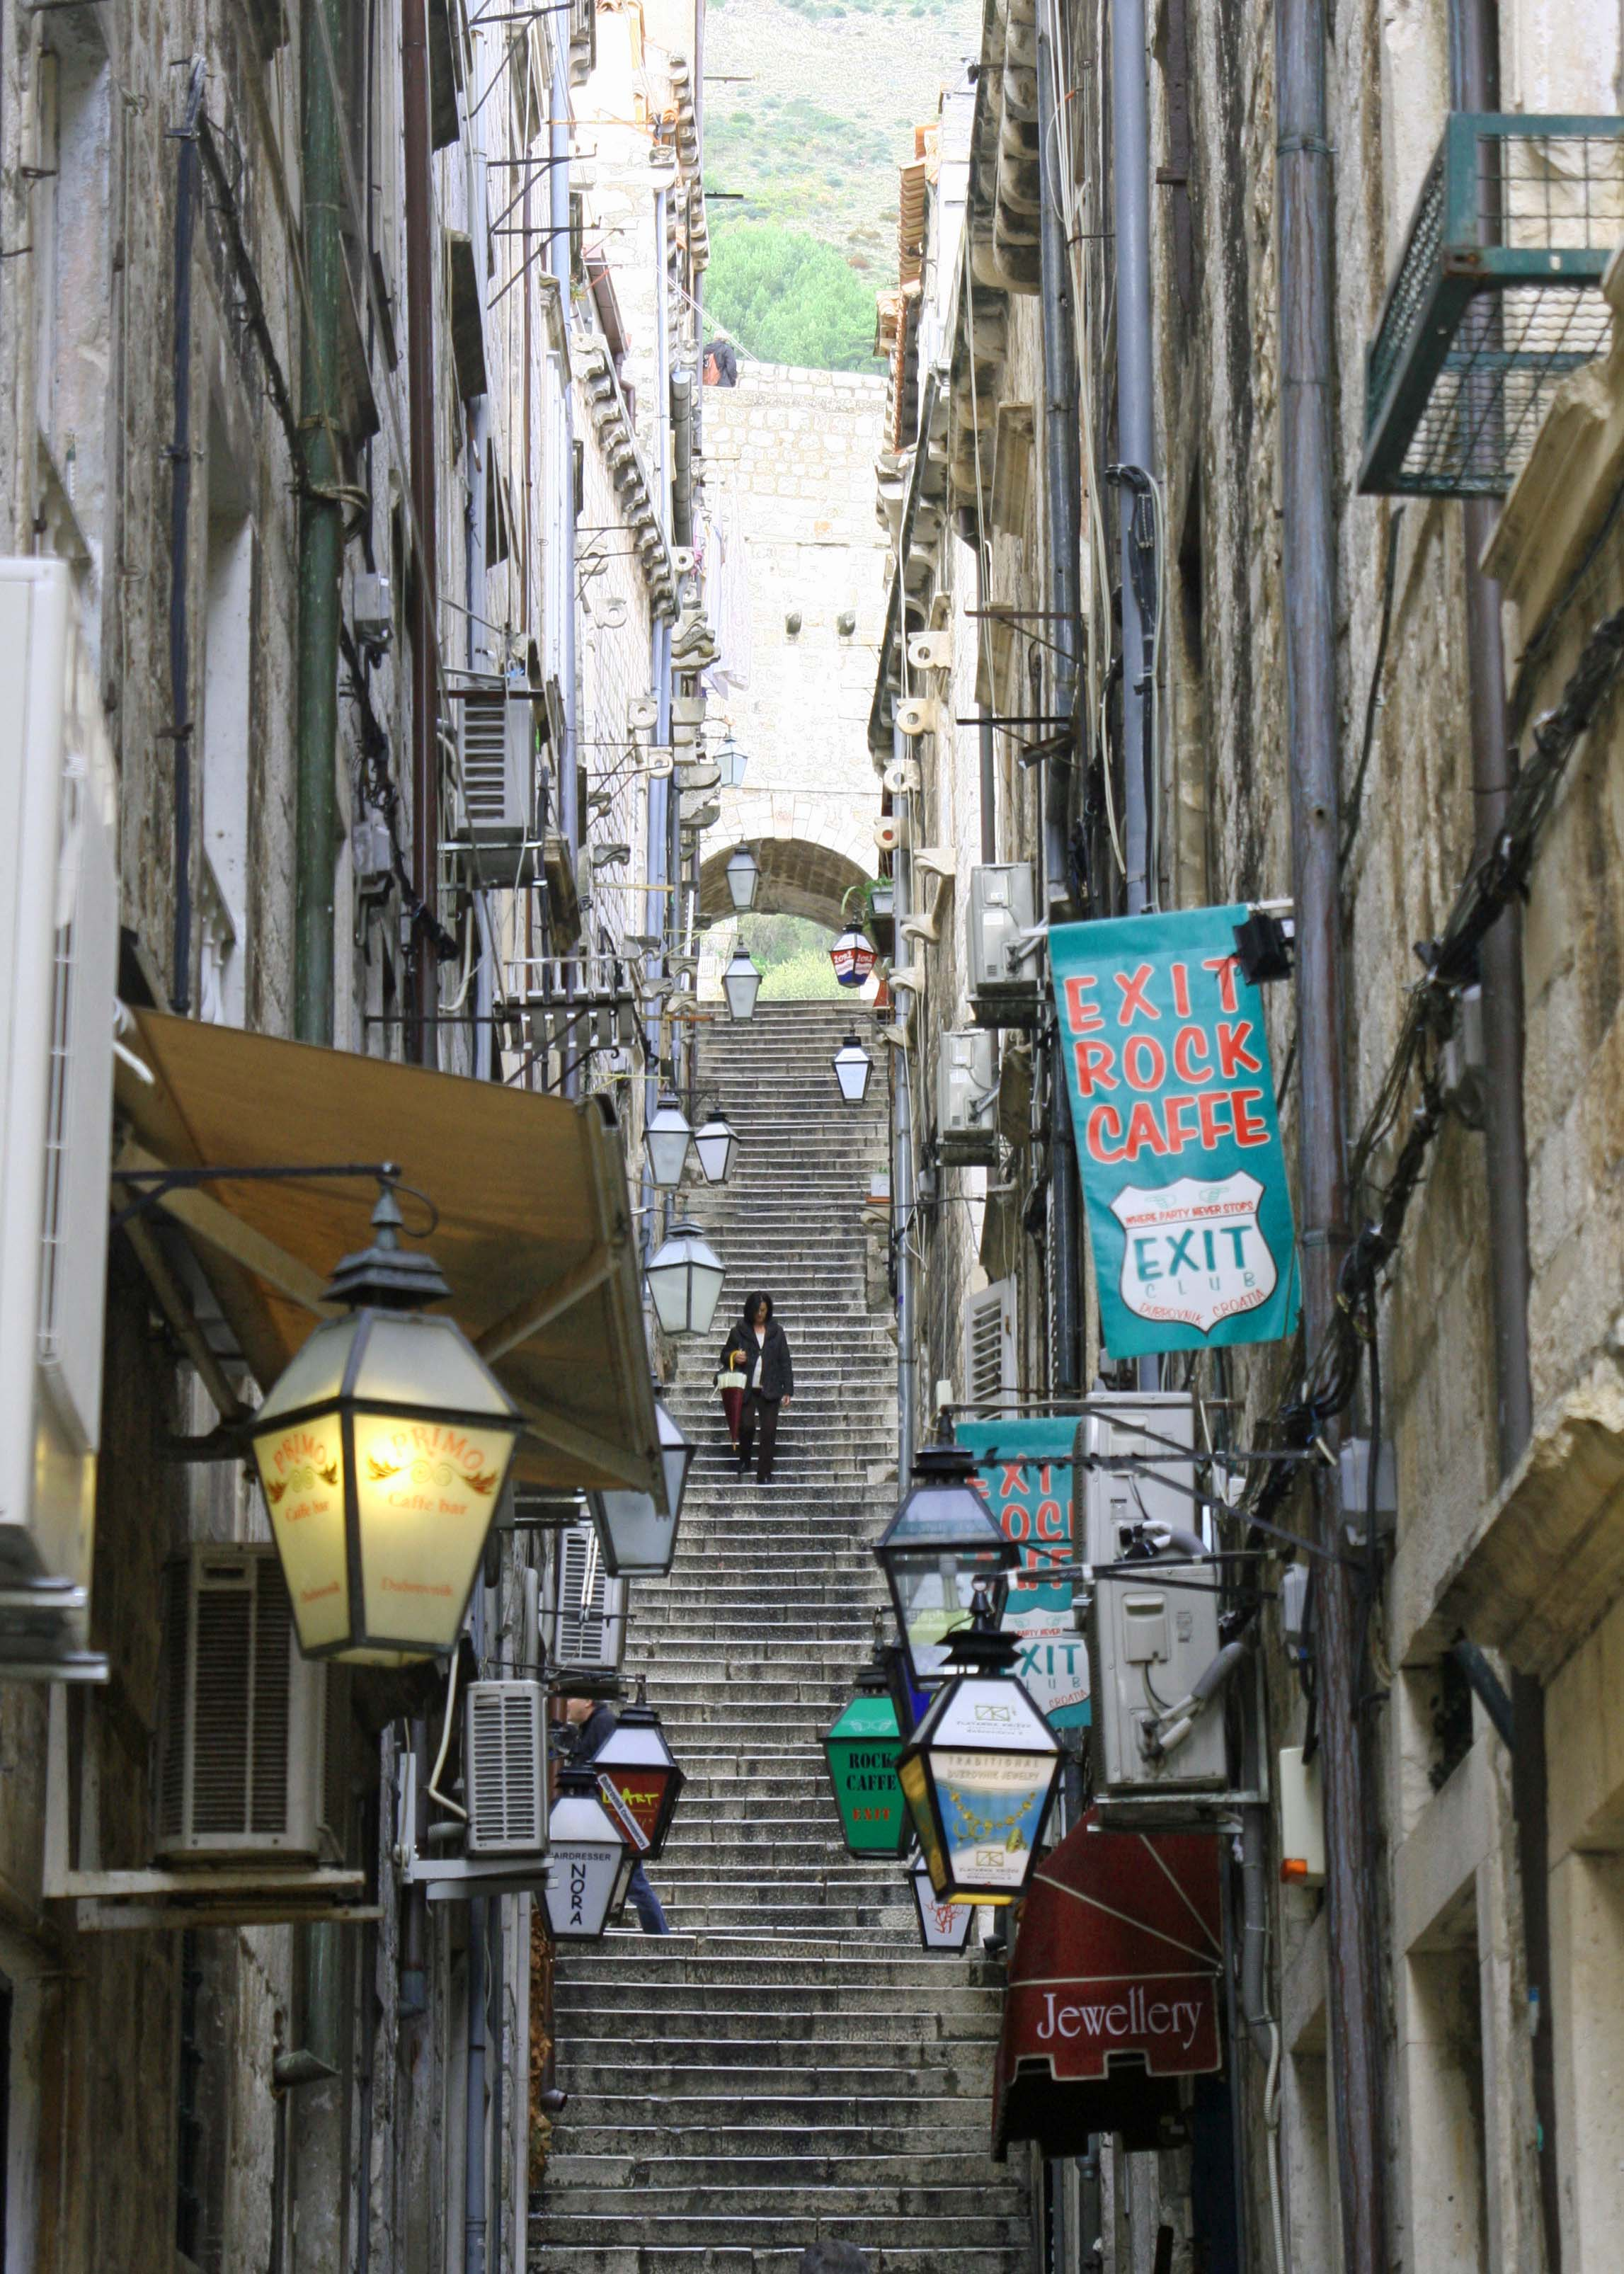 Walkways such as this and the one below branch off from the Stradun in Dubrovnik, Croatia and invite exploration.